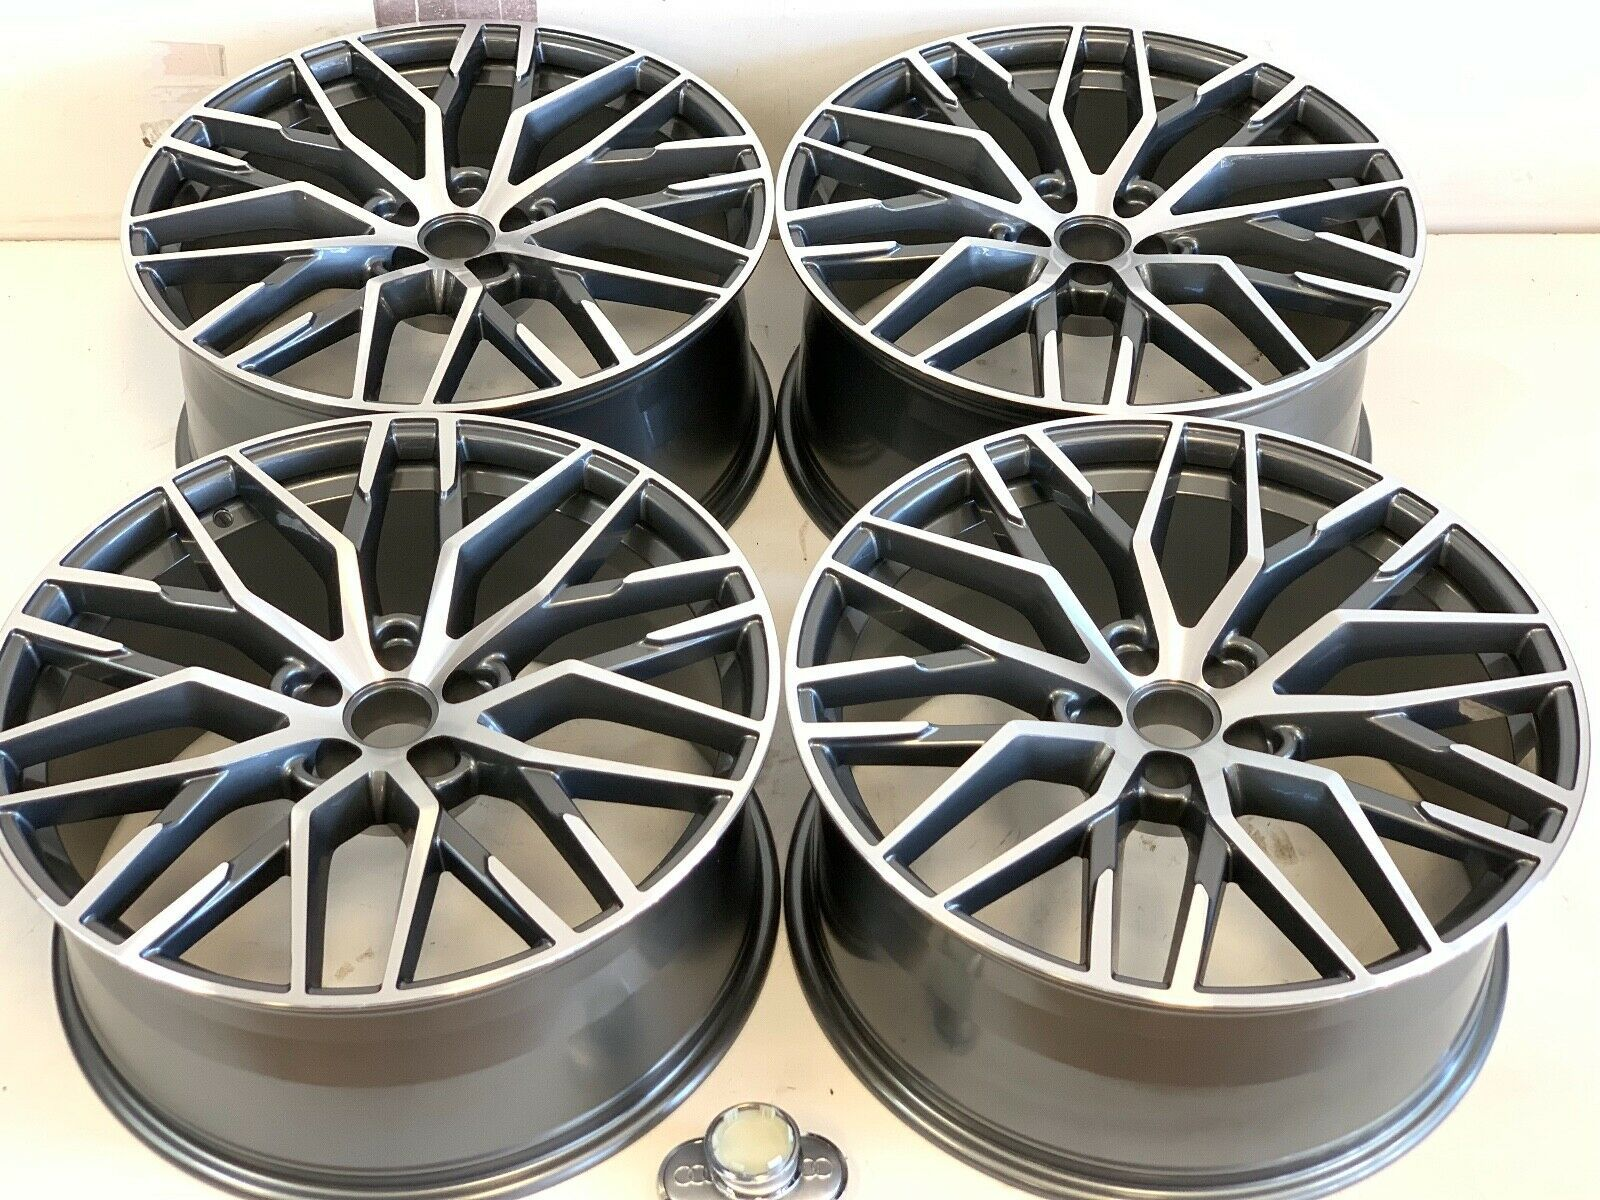 Audi Rs5 Wheels Audi Rs5 Wheel Audi